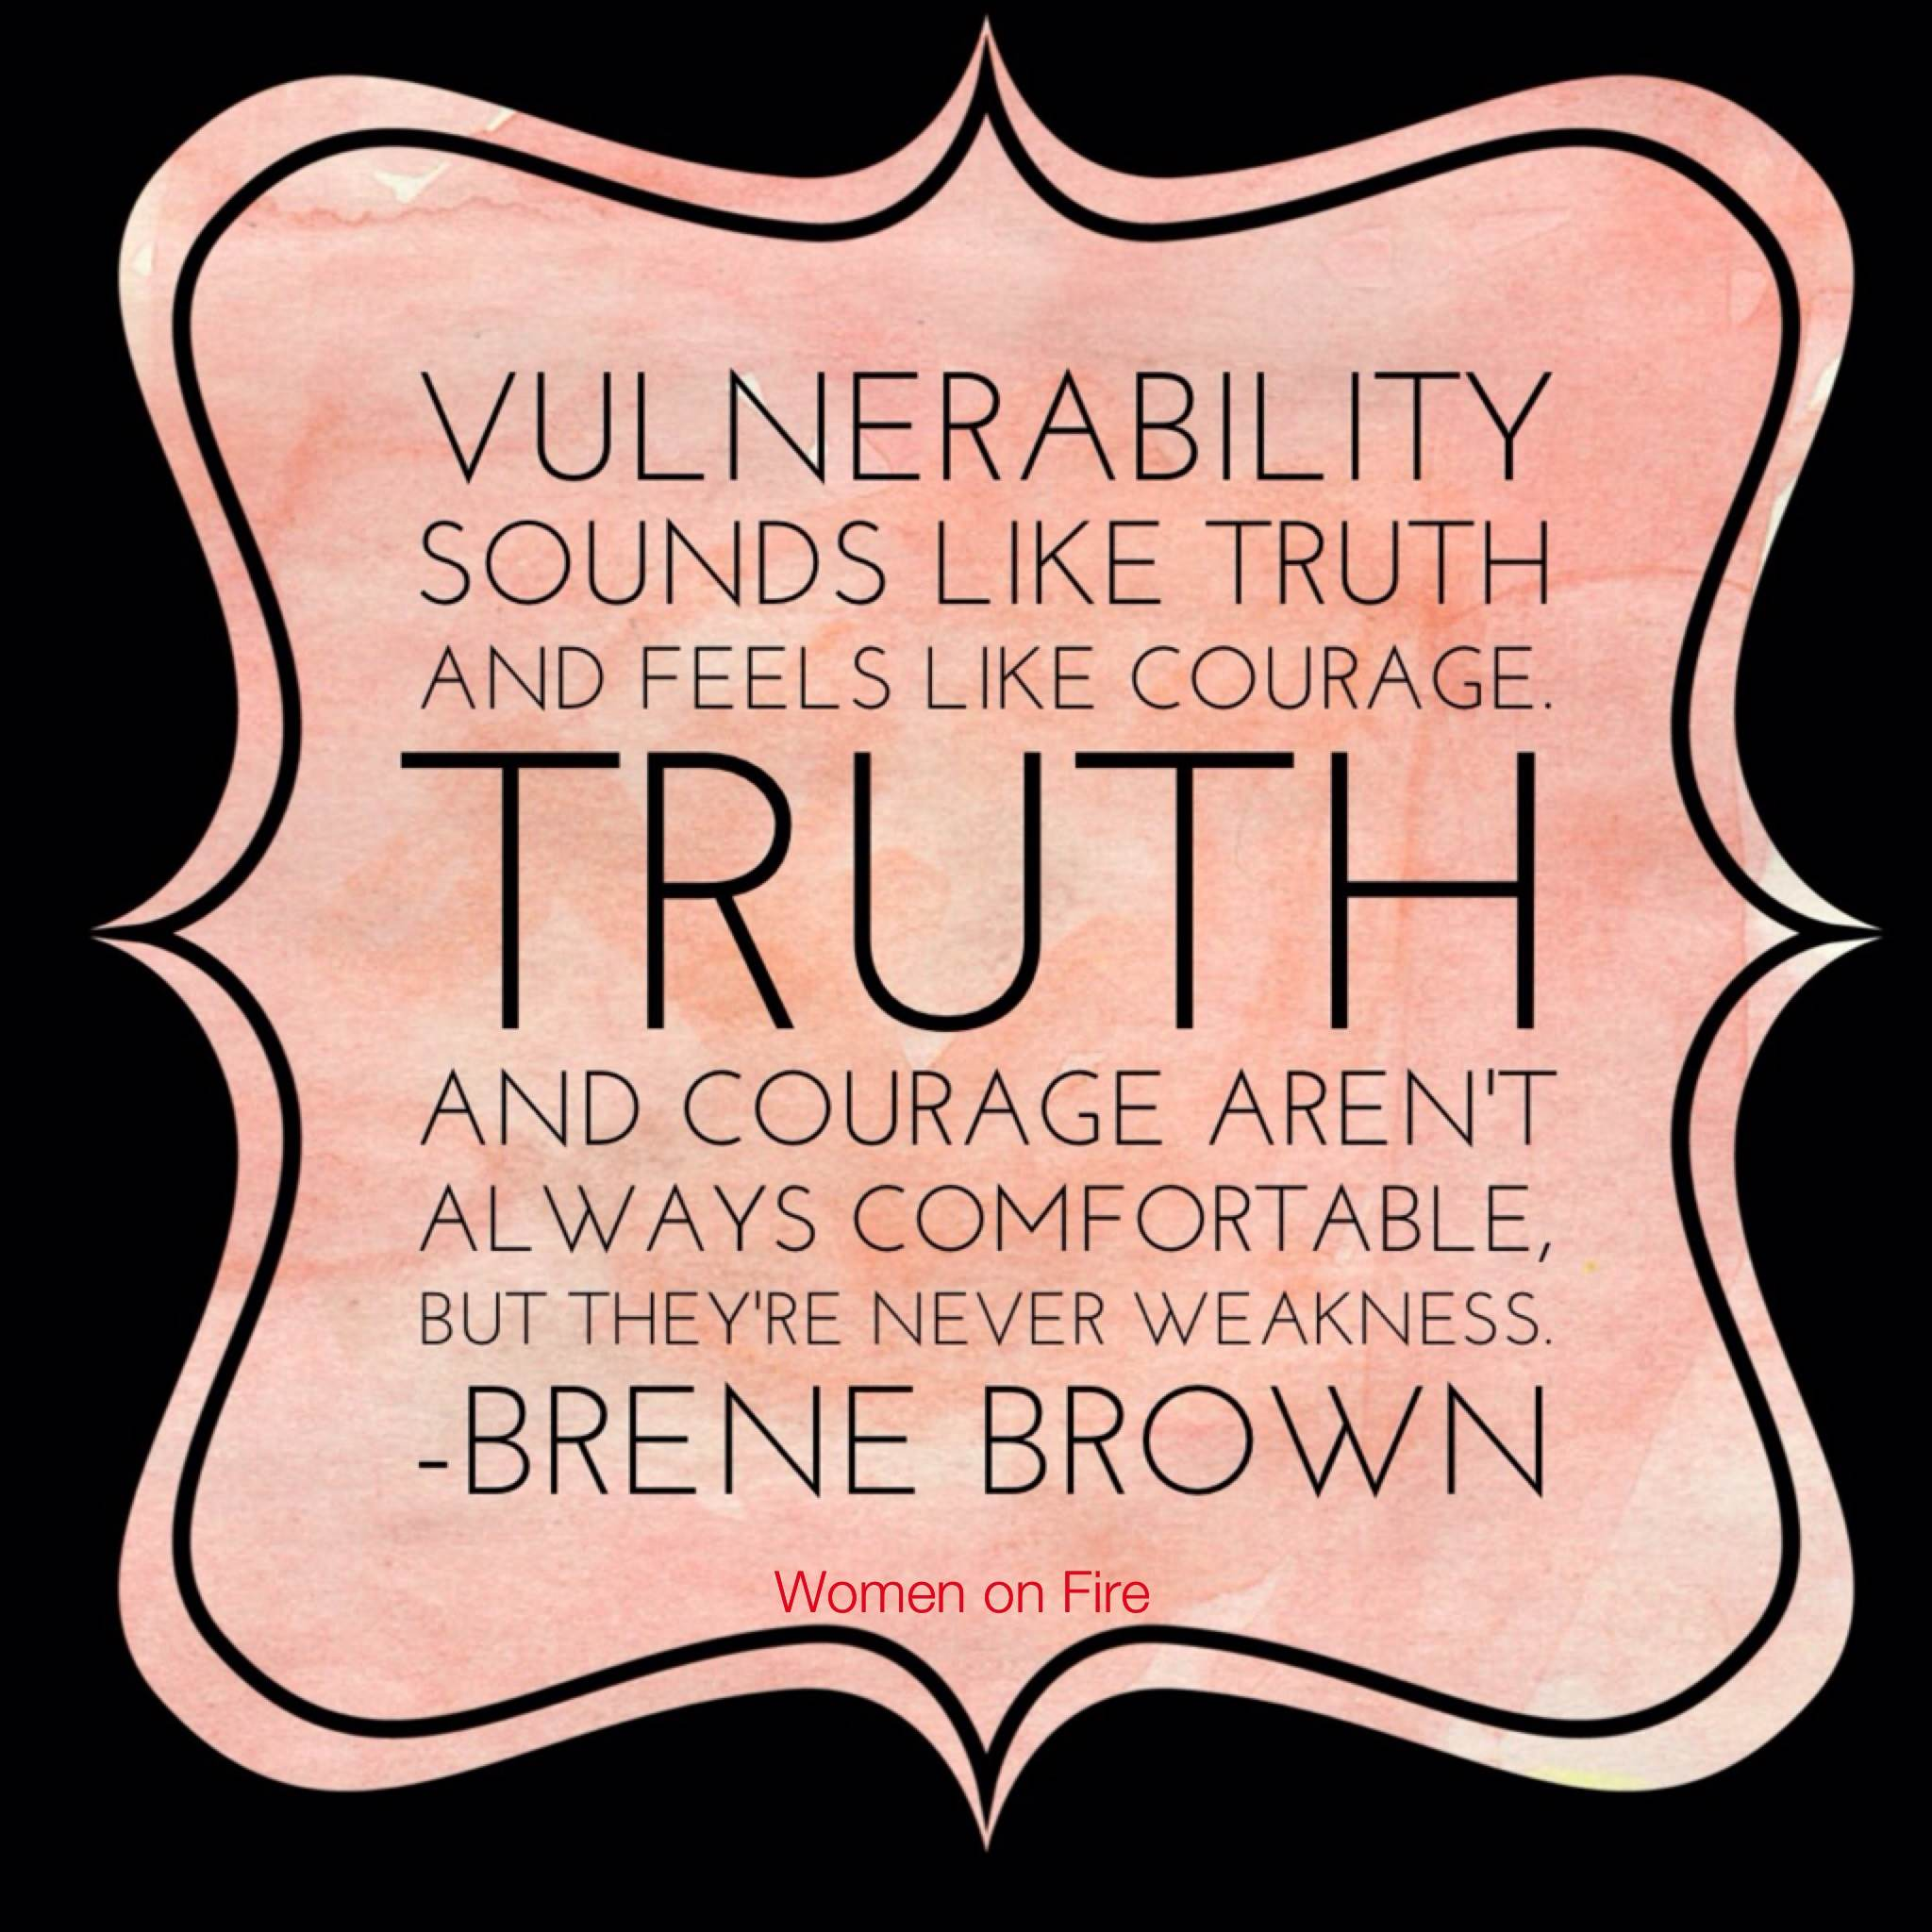 Vulnerability sounds like truth and feels like courage- Check out the latest from www.womenonfire.com about vulnerabilty